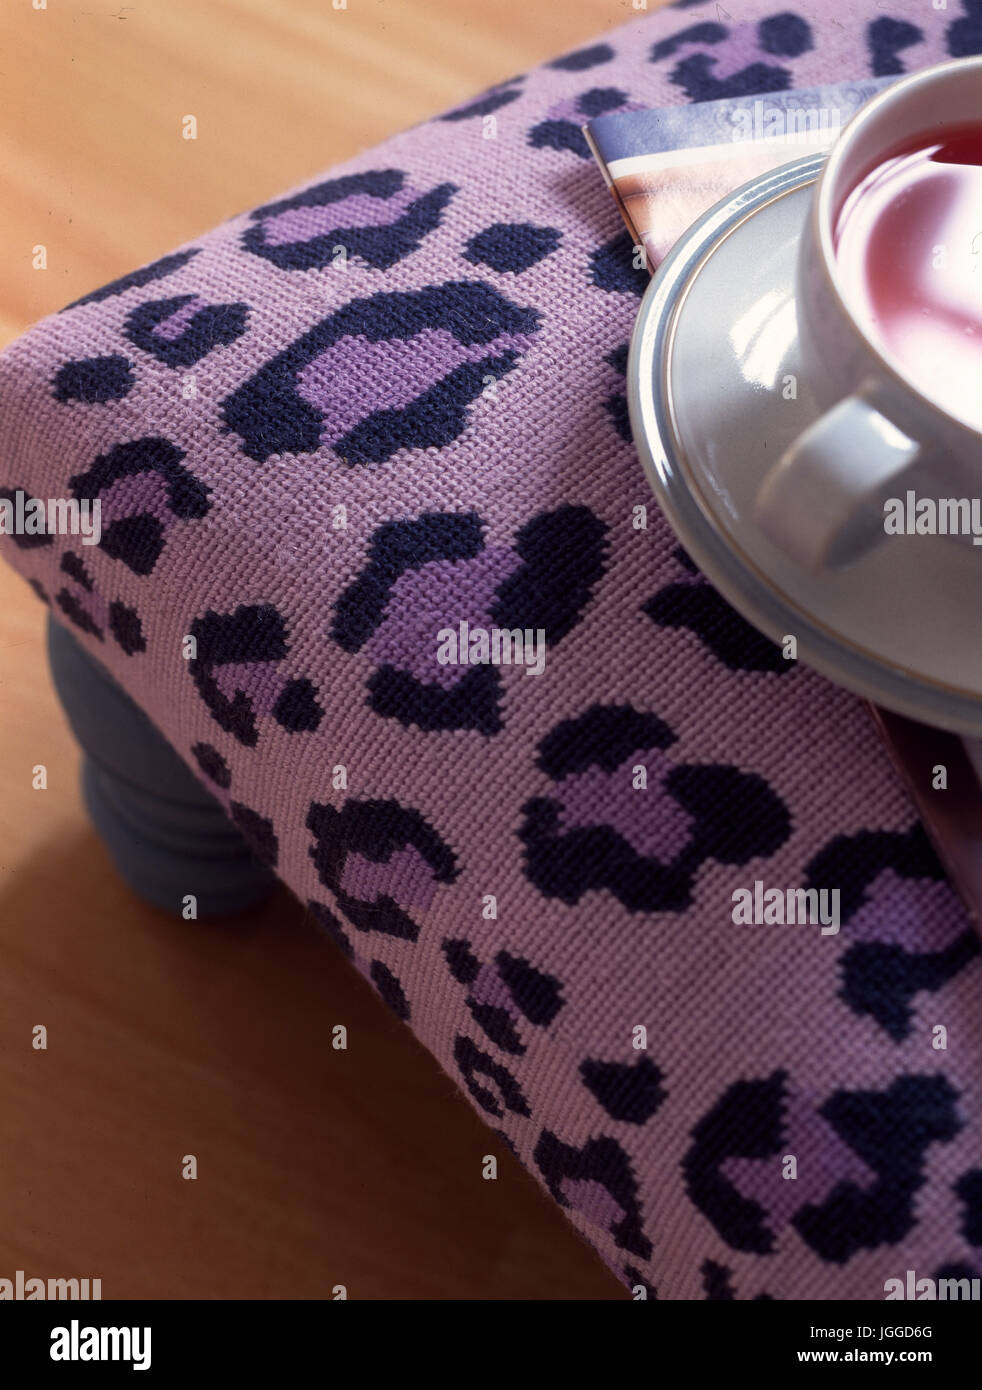 Detail of cup of tea on mauve needlepoint footstool - Stock Image